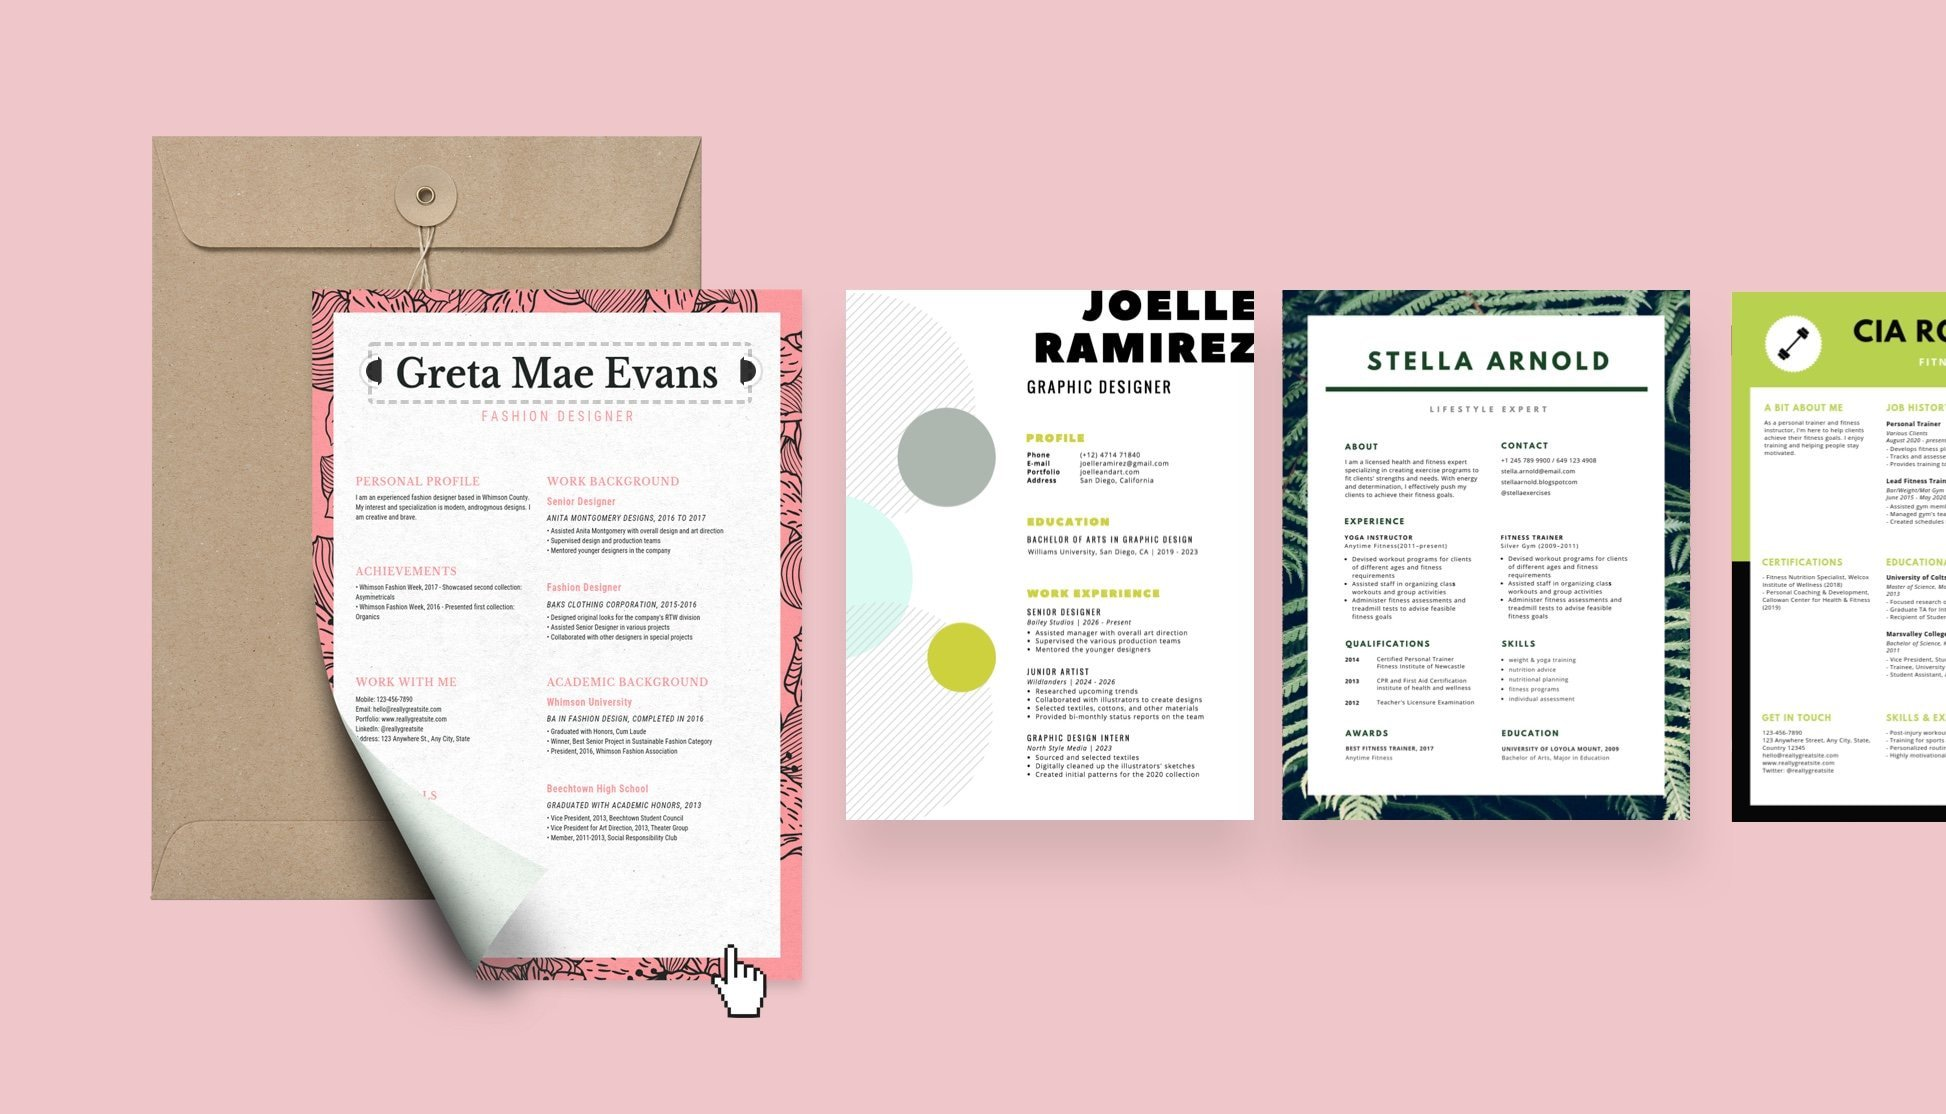 free resume builder design custom in canva want to make for results oriented imdb Resume Want To Make A Resume For Free